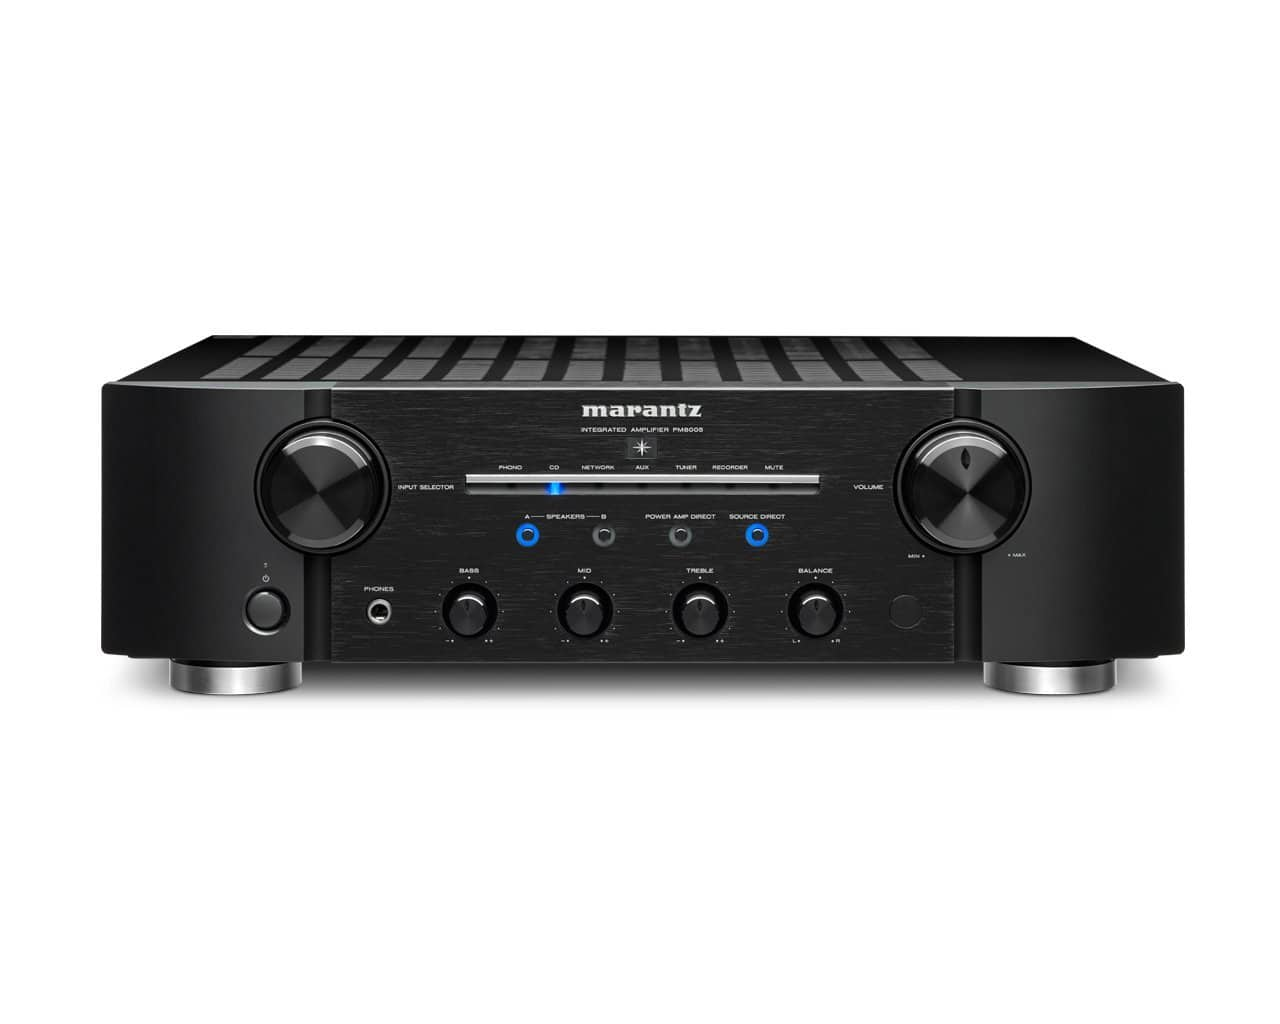 Marantz PM-8005 Integrated Amplifier $899 + Prime Shipping